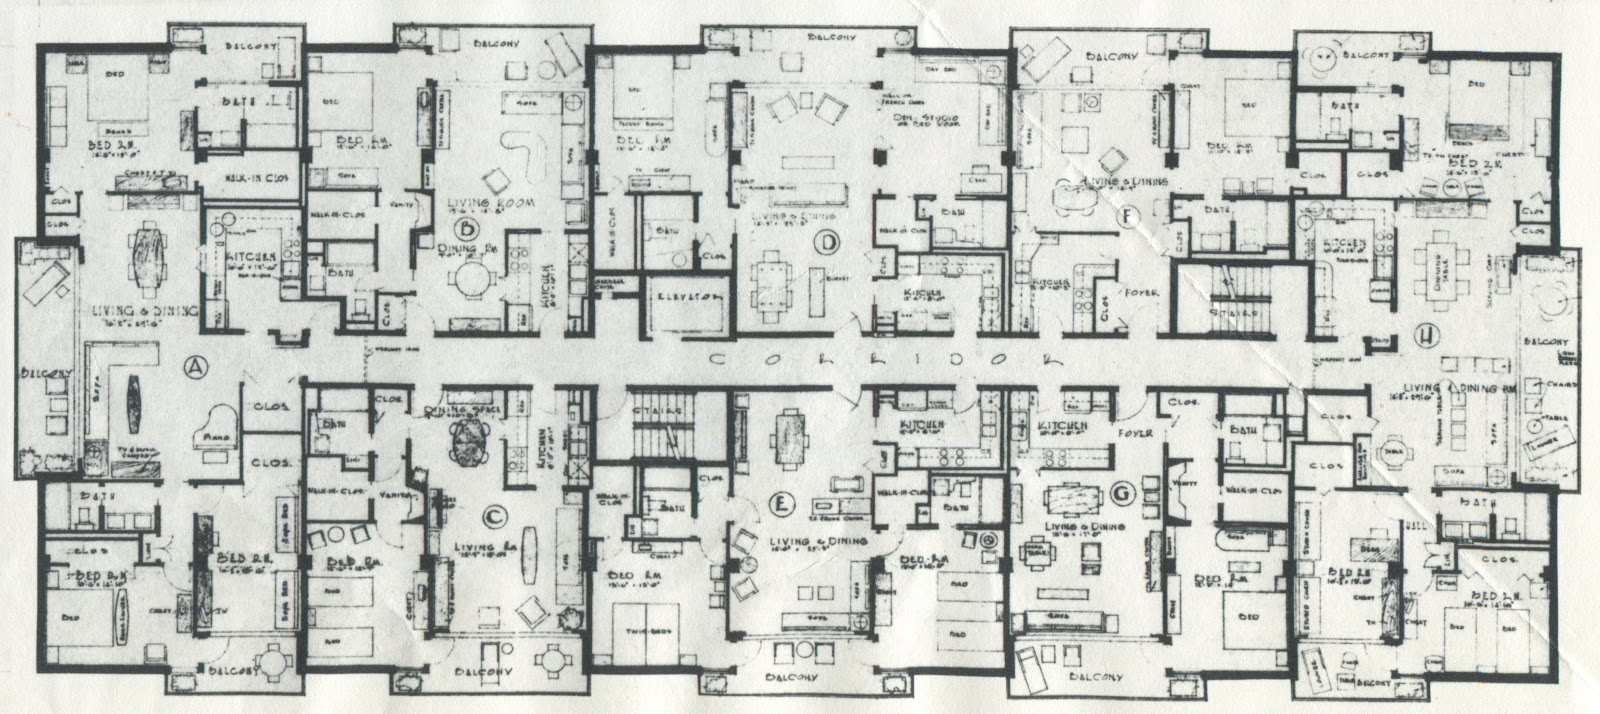 The Floor Plan Submitted For The Original Building The Floor Plan